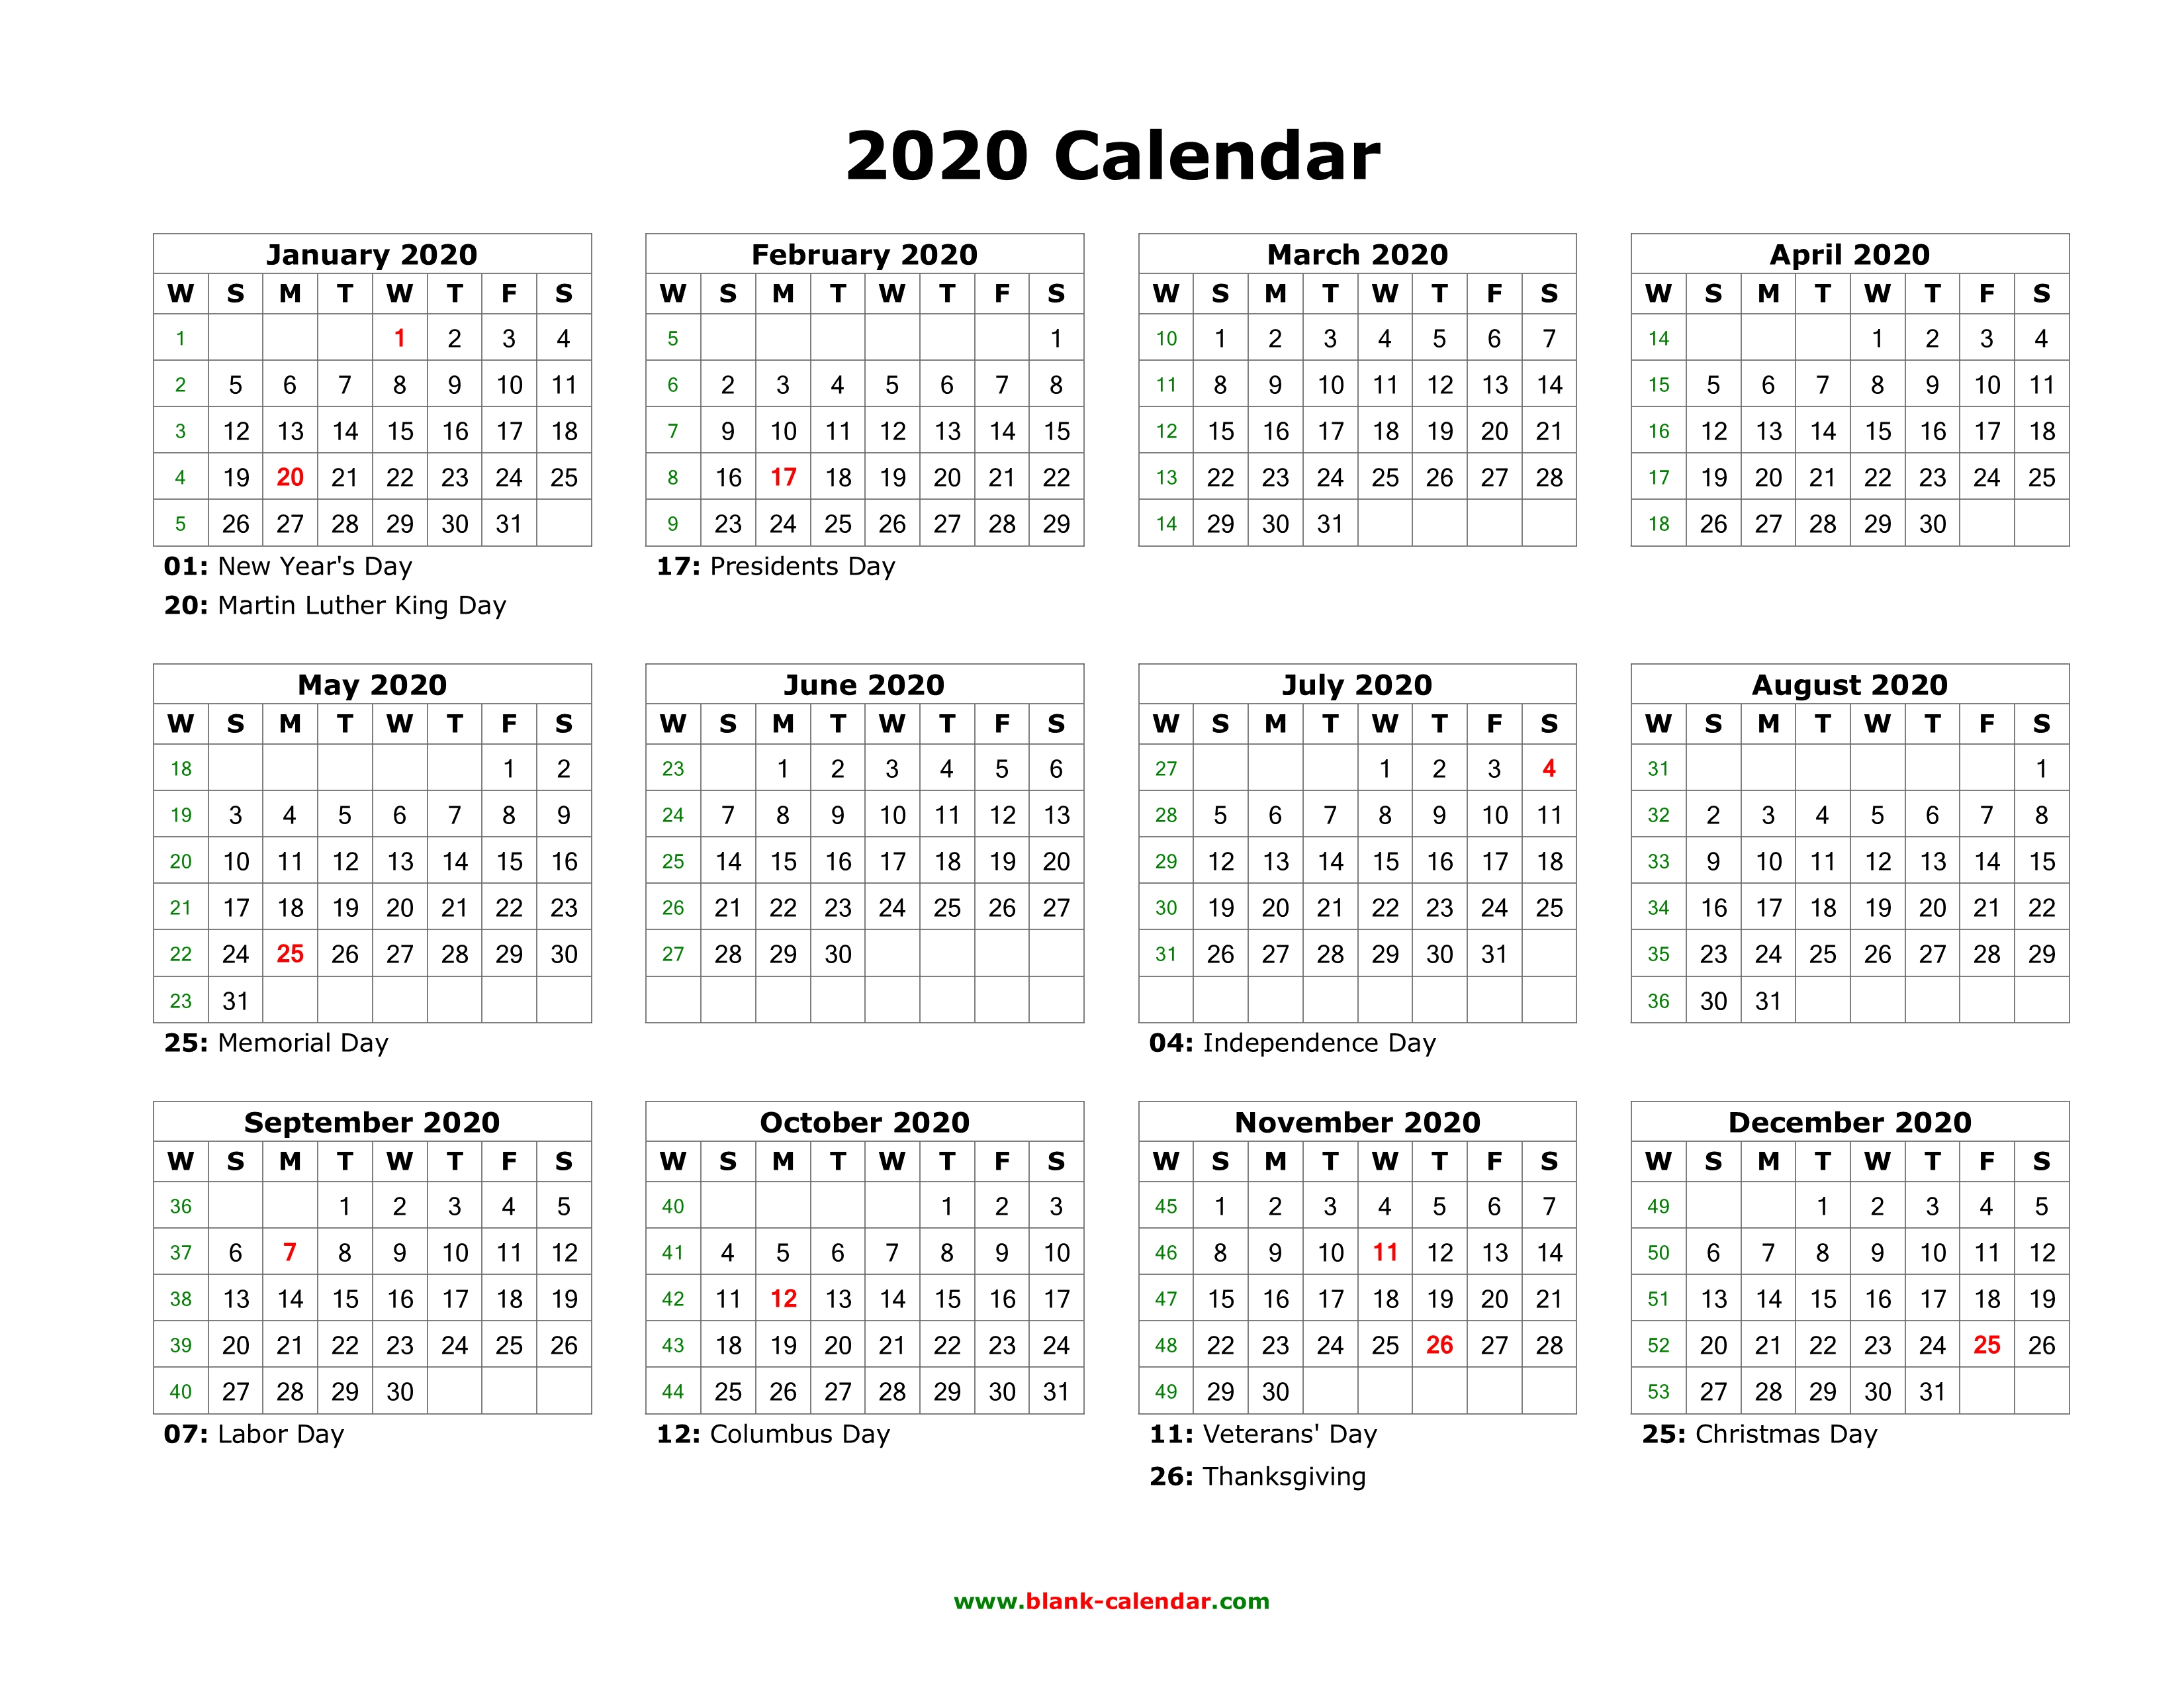 Blank Calendar 2020 | Free Download Calendar Templates inside Calender 2020 Template Monday To Sunday